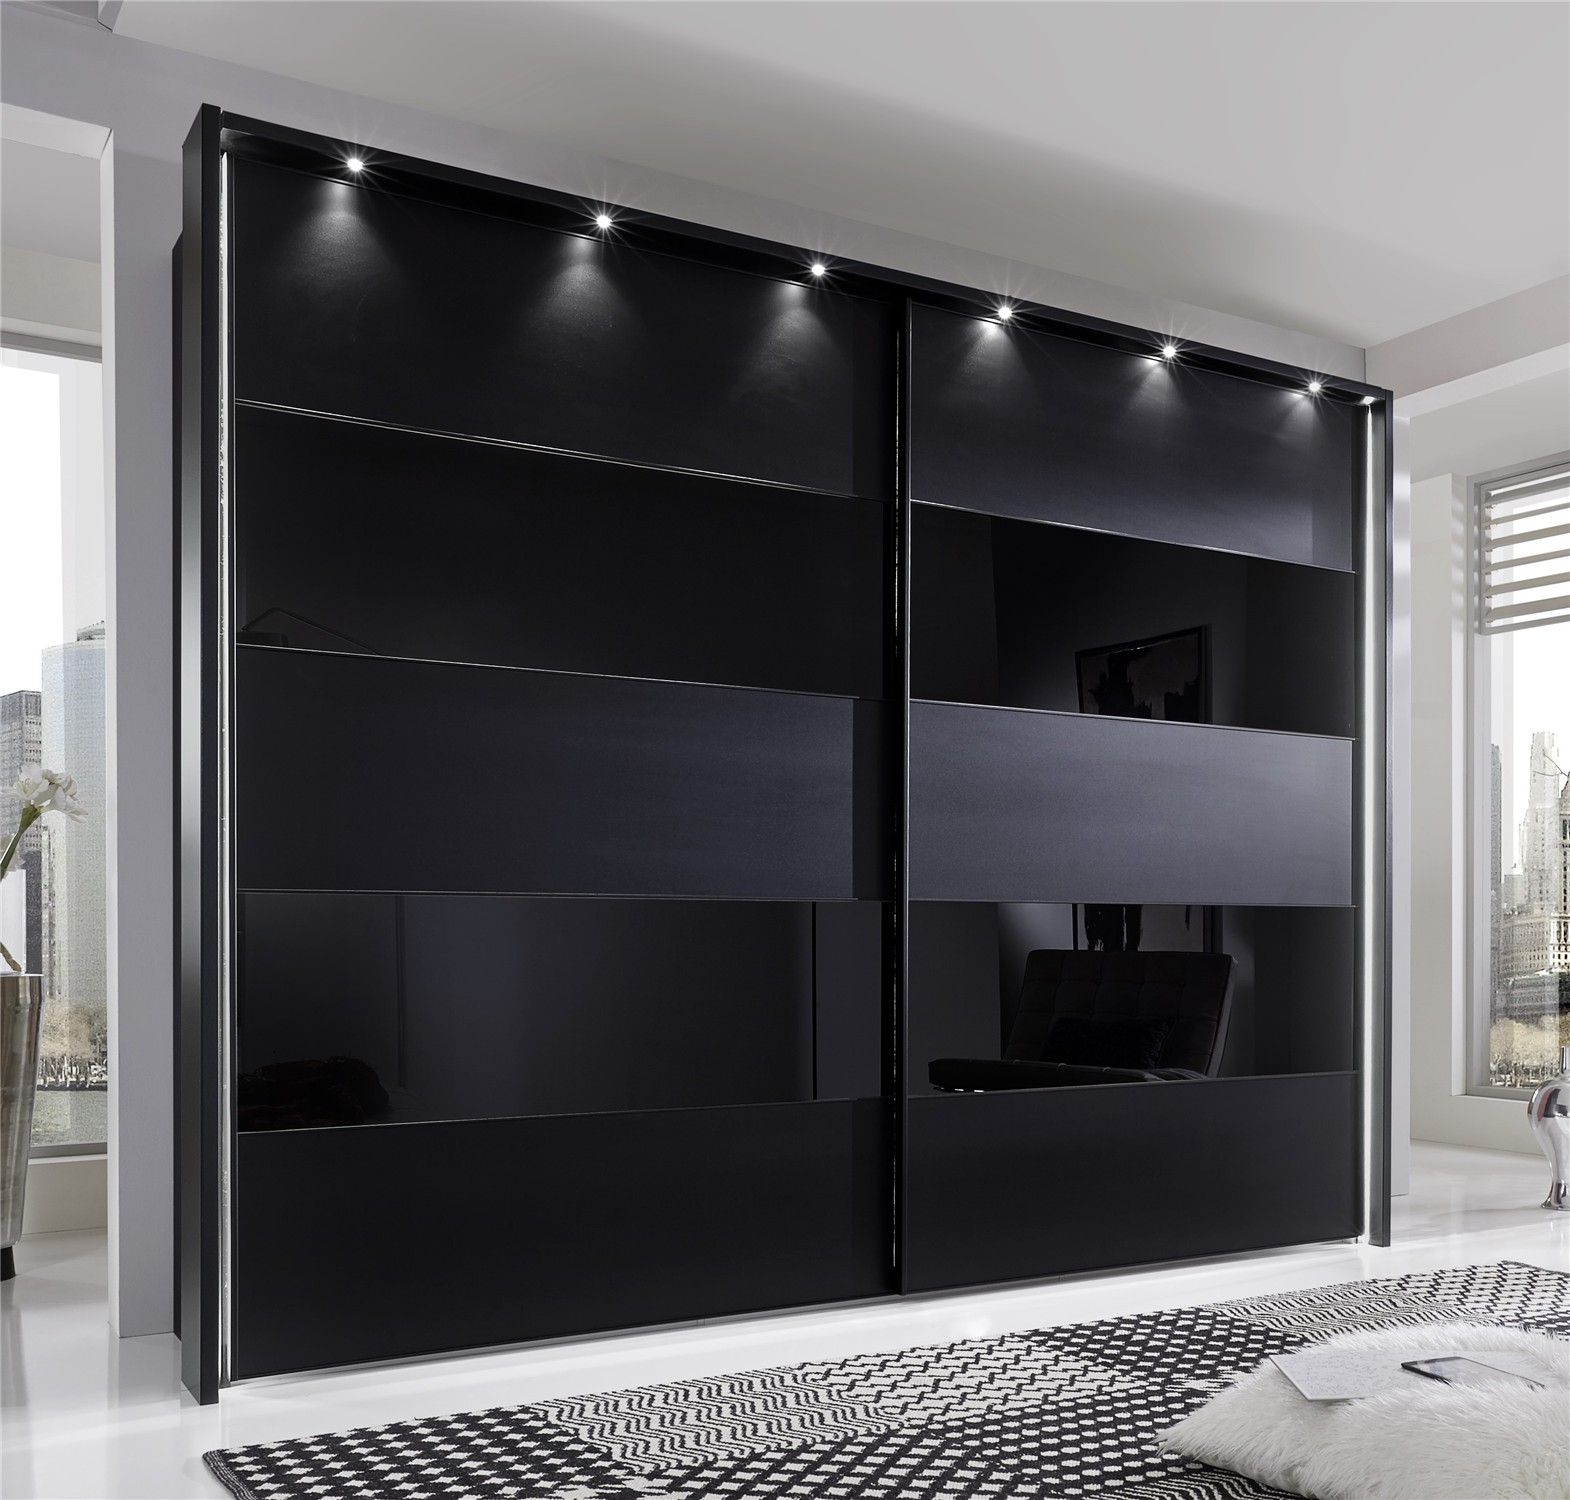 Black And White Contemporary Bedroom Ideas Colors Of Bedroom Bedroom Furniture Sets India Bedroom Almirah Image: Black Matt & Glass Wardrobe